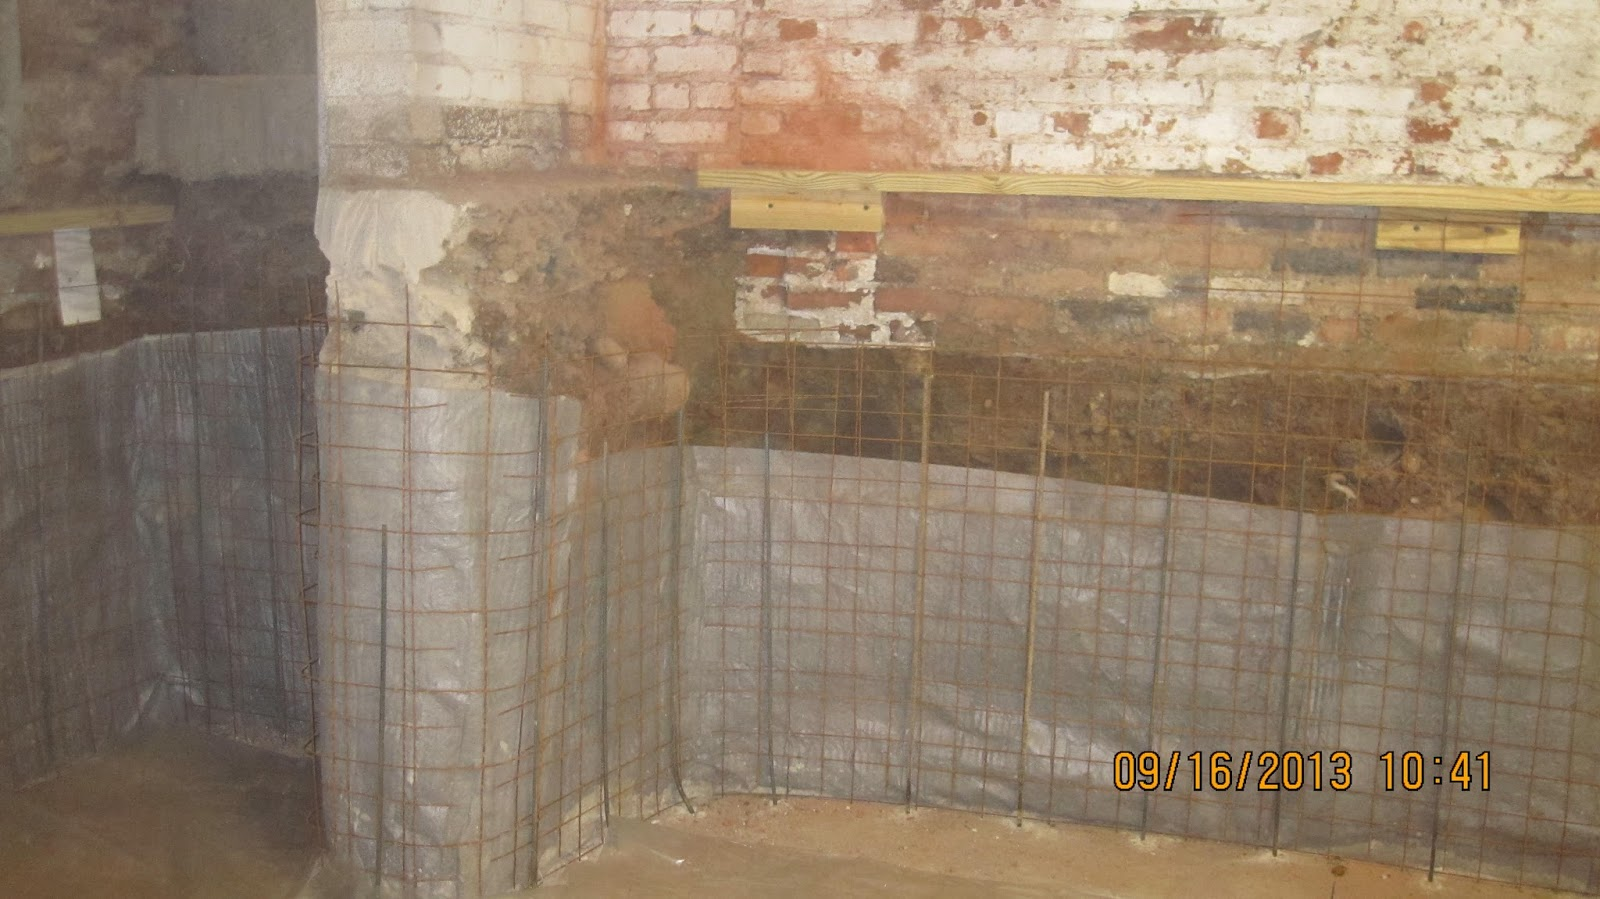 slab deepening basement anand enterprises project kour1j1201